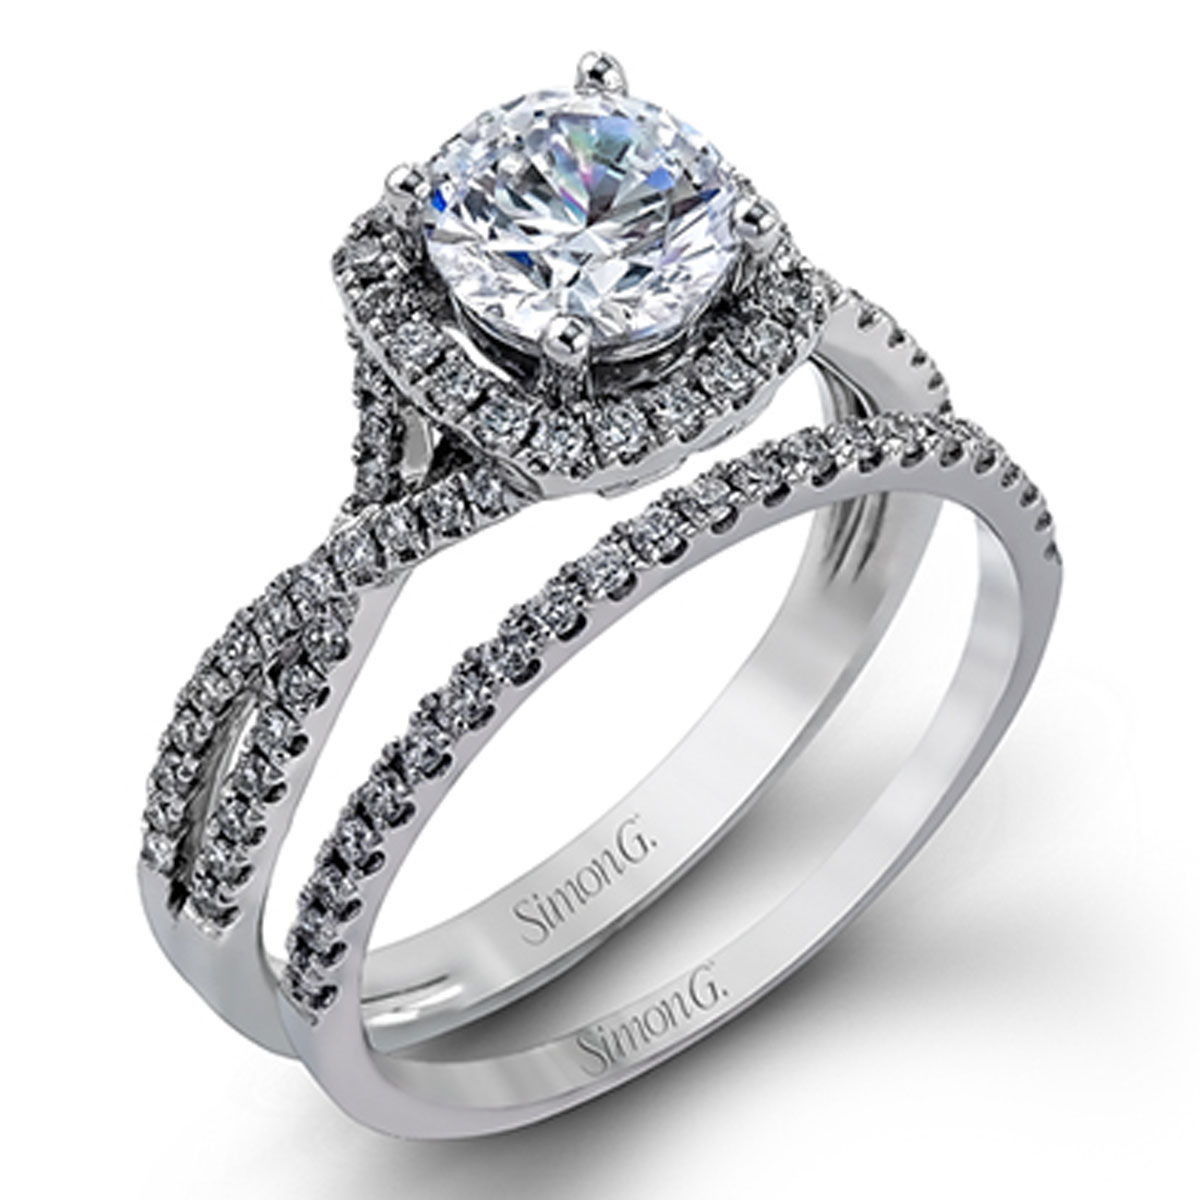 Simon G Engagement Rings 45ctw Accent Diamonds Setting